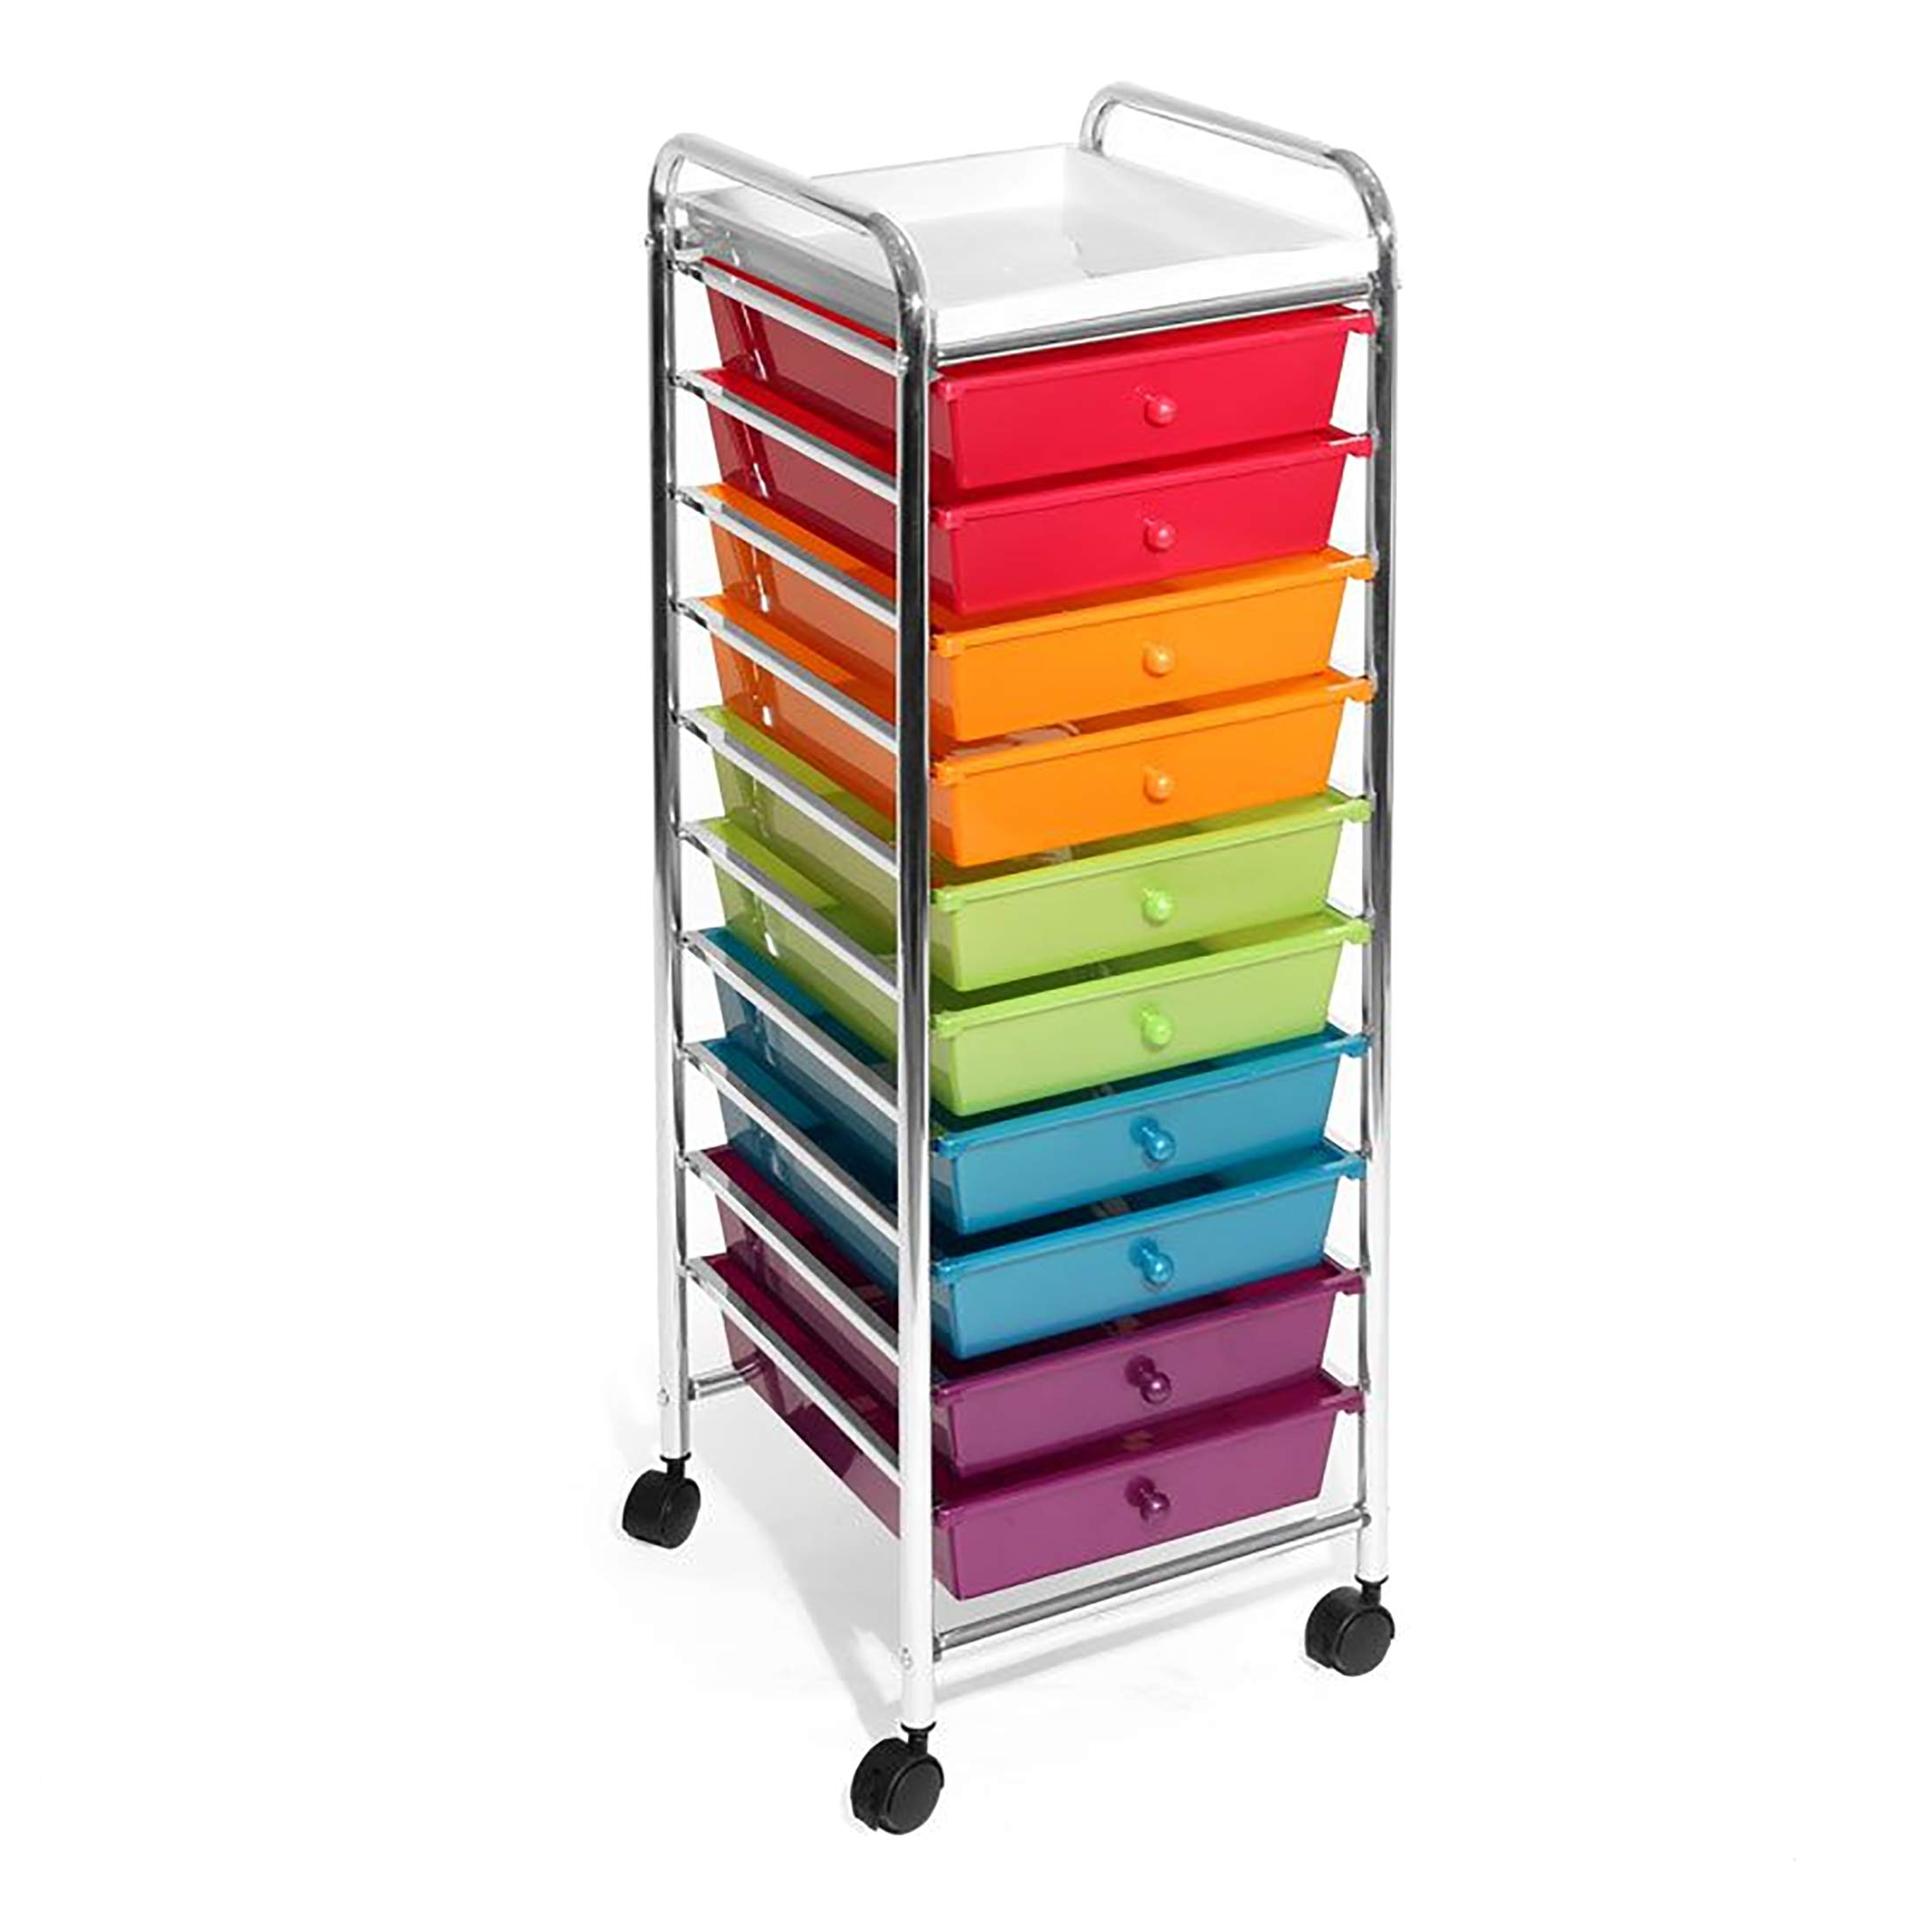 Seville Classics 10-Drawer Organizer Cart, Pearlescent Multi-Color, Multicolor (Pearlized) by Seville Classics